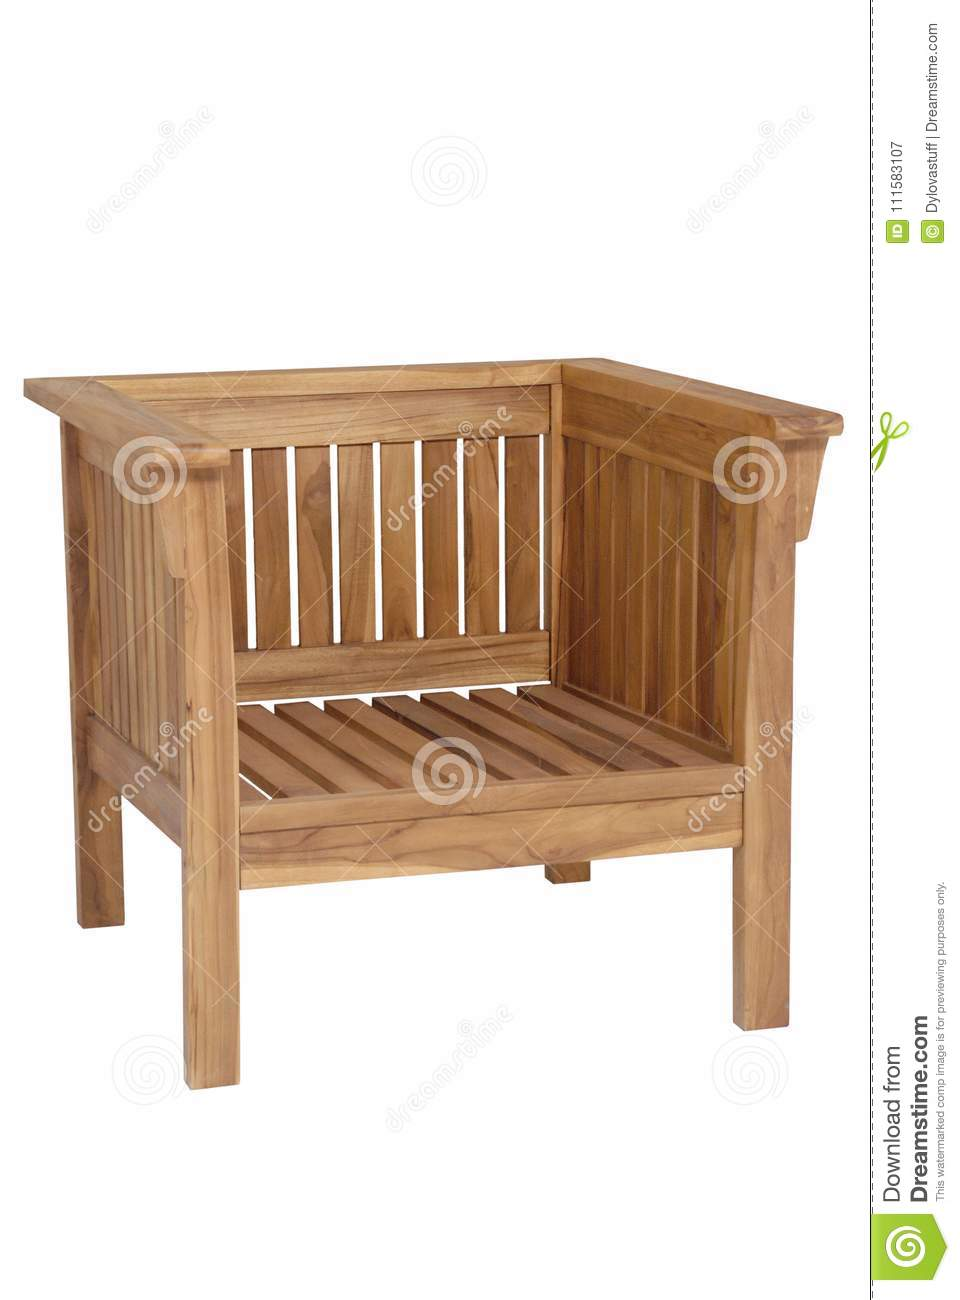 Teak Chair Garden Furniture, Garden Furniture, Teak Chair Stock ...